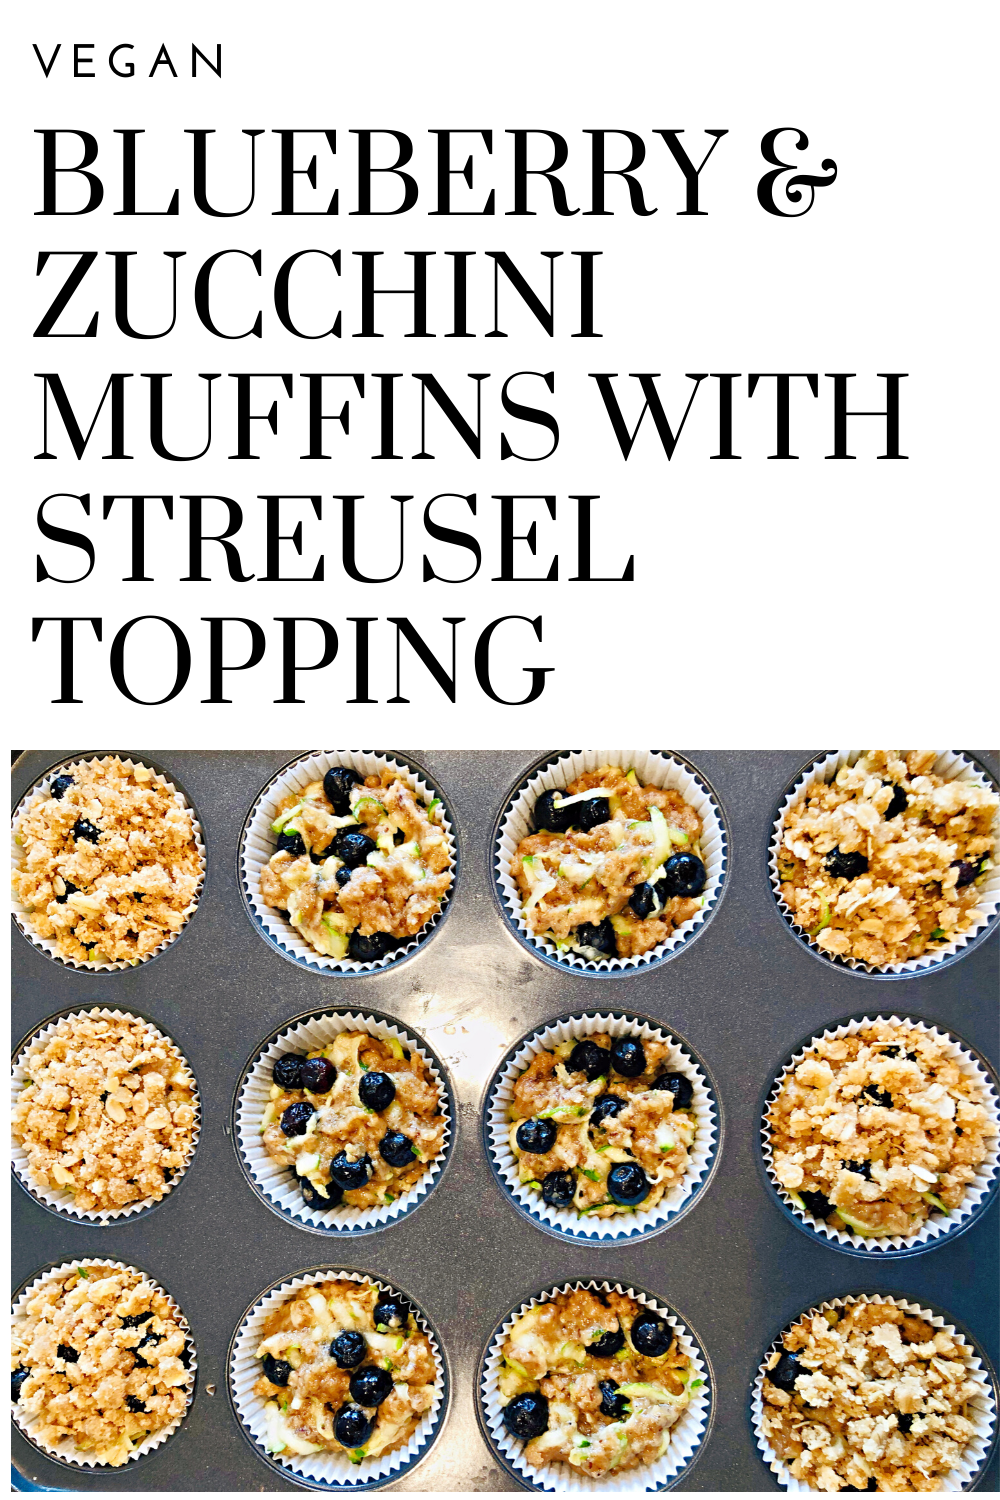 Blueberry and Zucchini Muffins with Streusel Topping - Sweet and savory flavors of the season shine in these quick easy vegan blueberry zucchini muffins that are perfect for breakfast or snacking! via @thiswifecooks